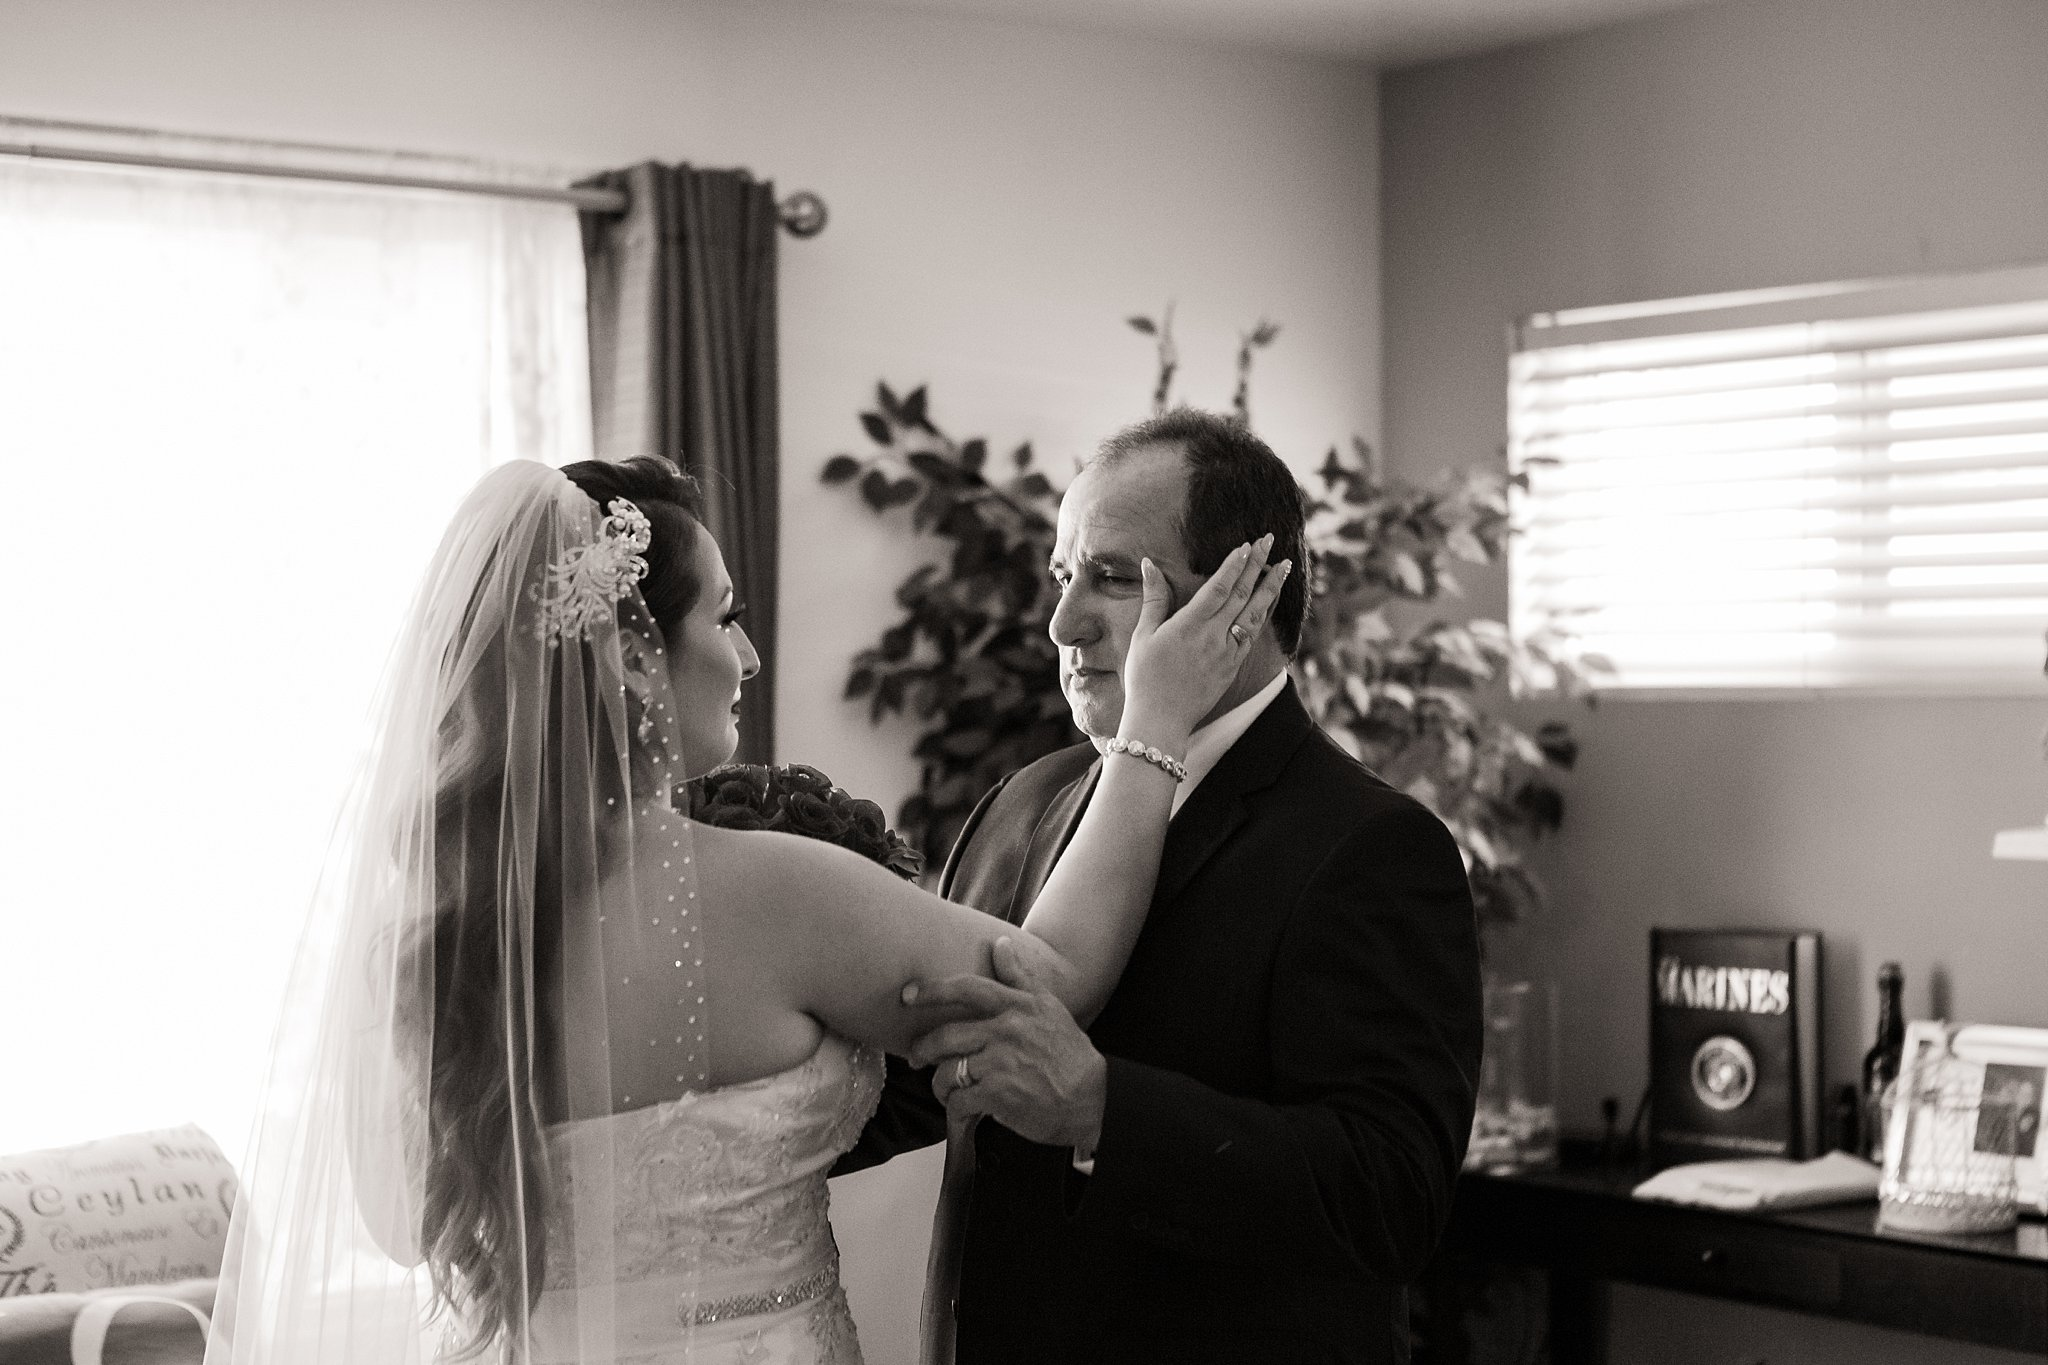 Father of the bride cries when he sees her for the first time as a bride.